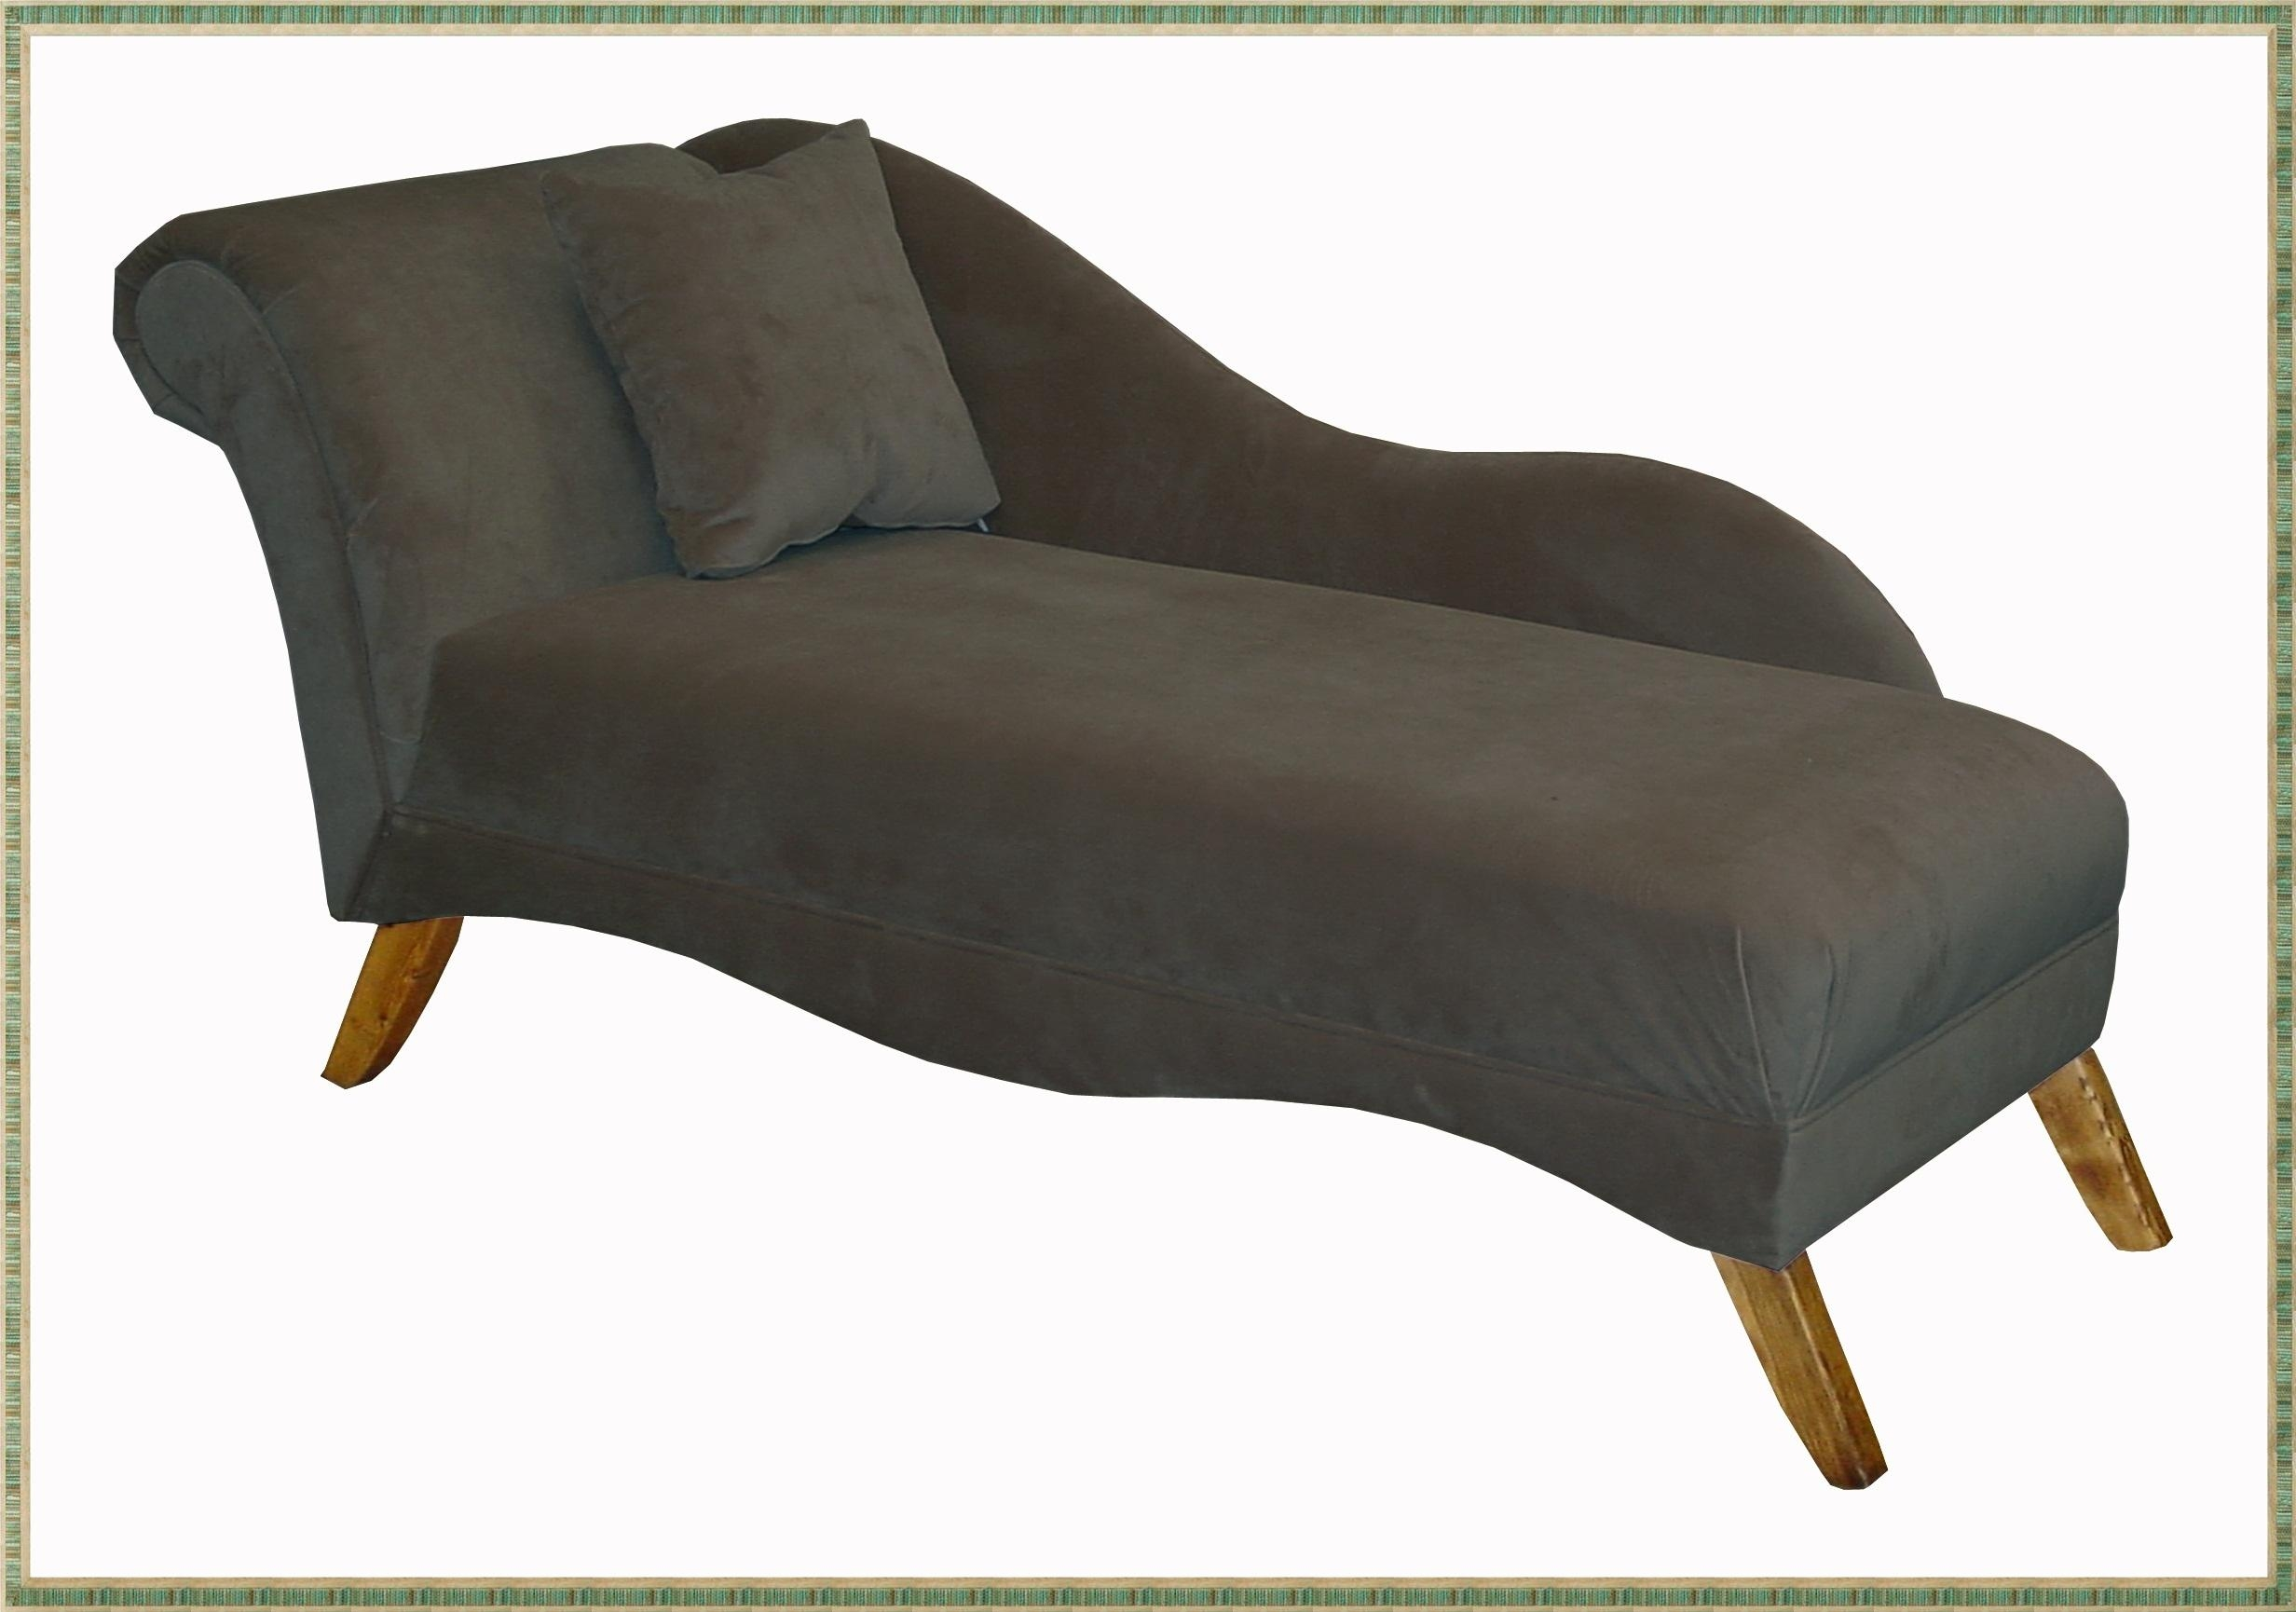 Chaise Lounge Slipcover | Home Decorations Ideas Regarding Slipcovered Chaises (Image 2 of 20)